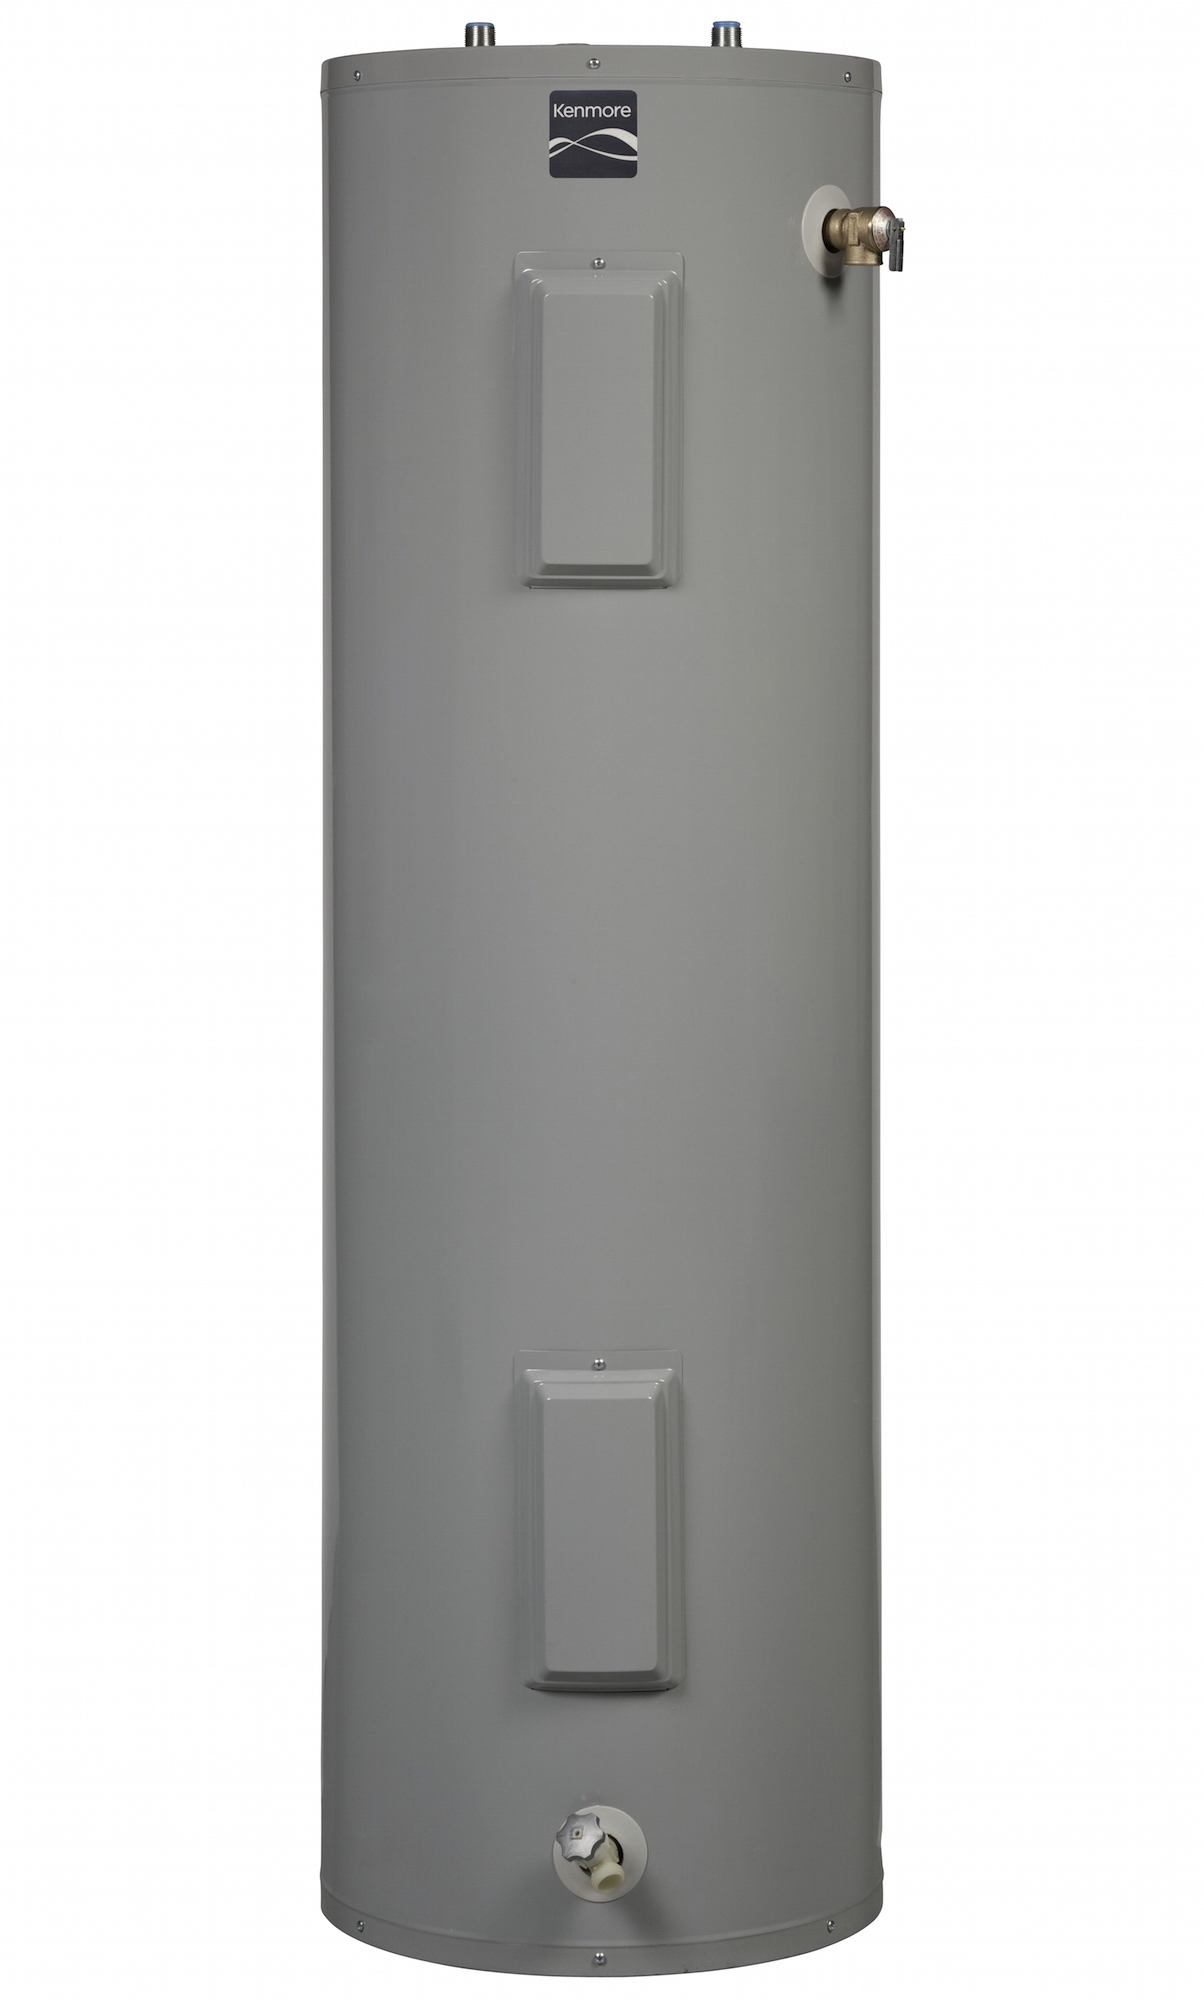 Kenmore 58640 40 gal. 6-Year Tall Electric Water Heater